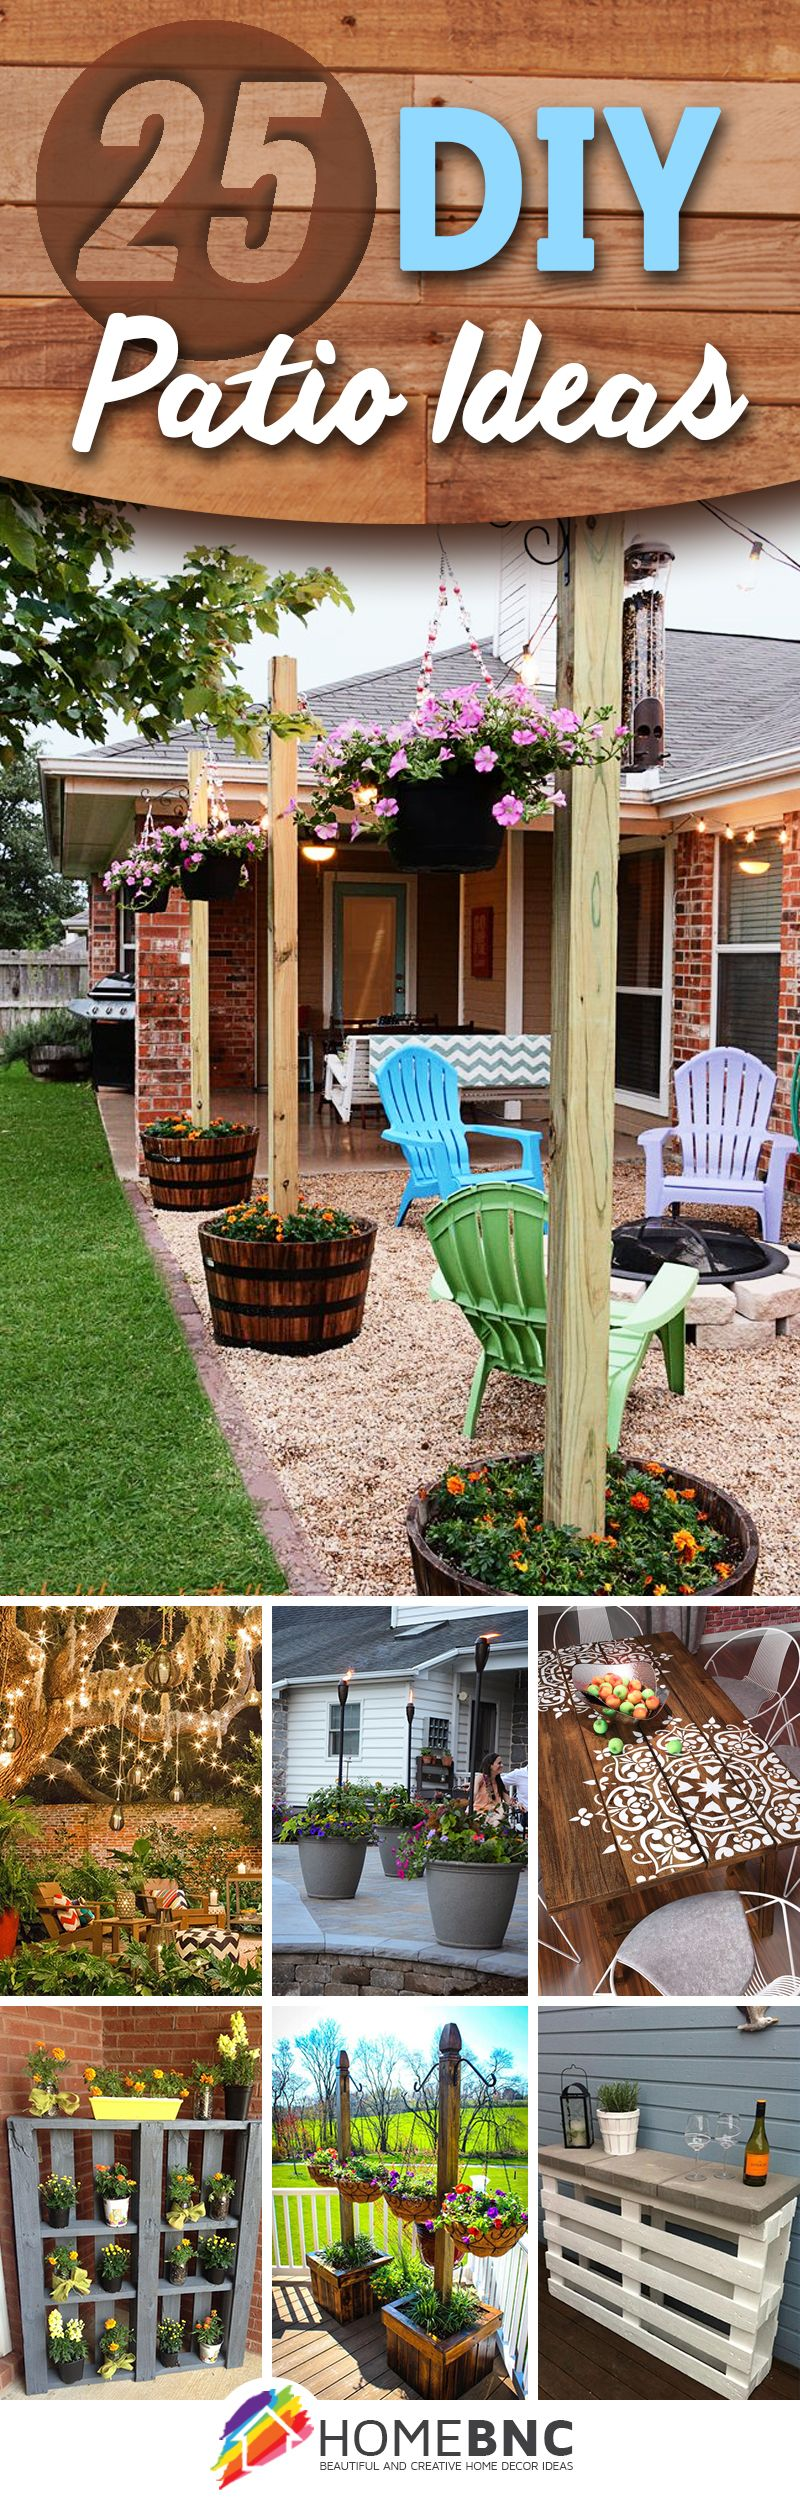 25 dazzling diy patio decoration ideas to create your getaway spot